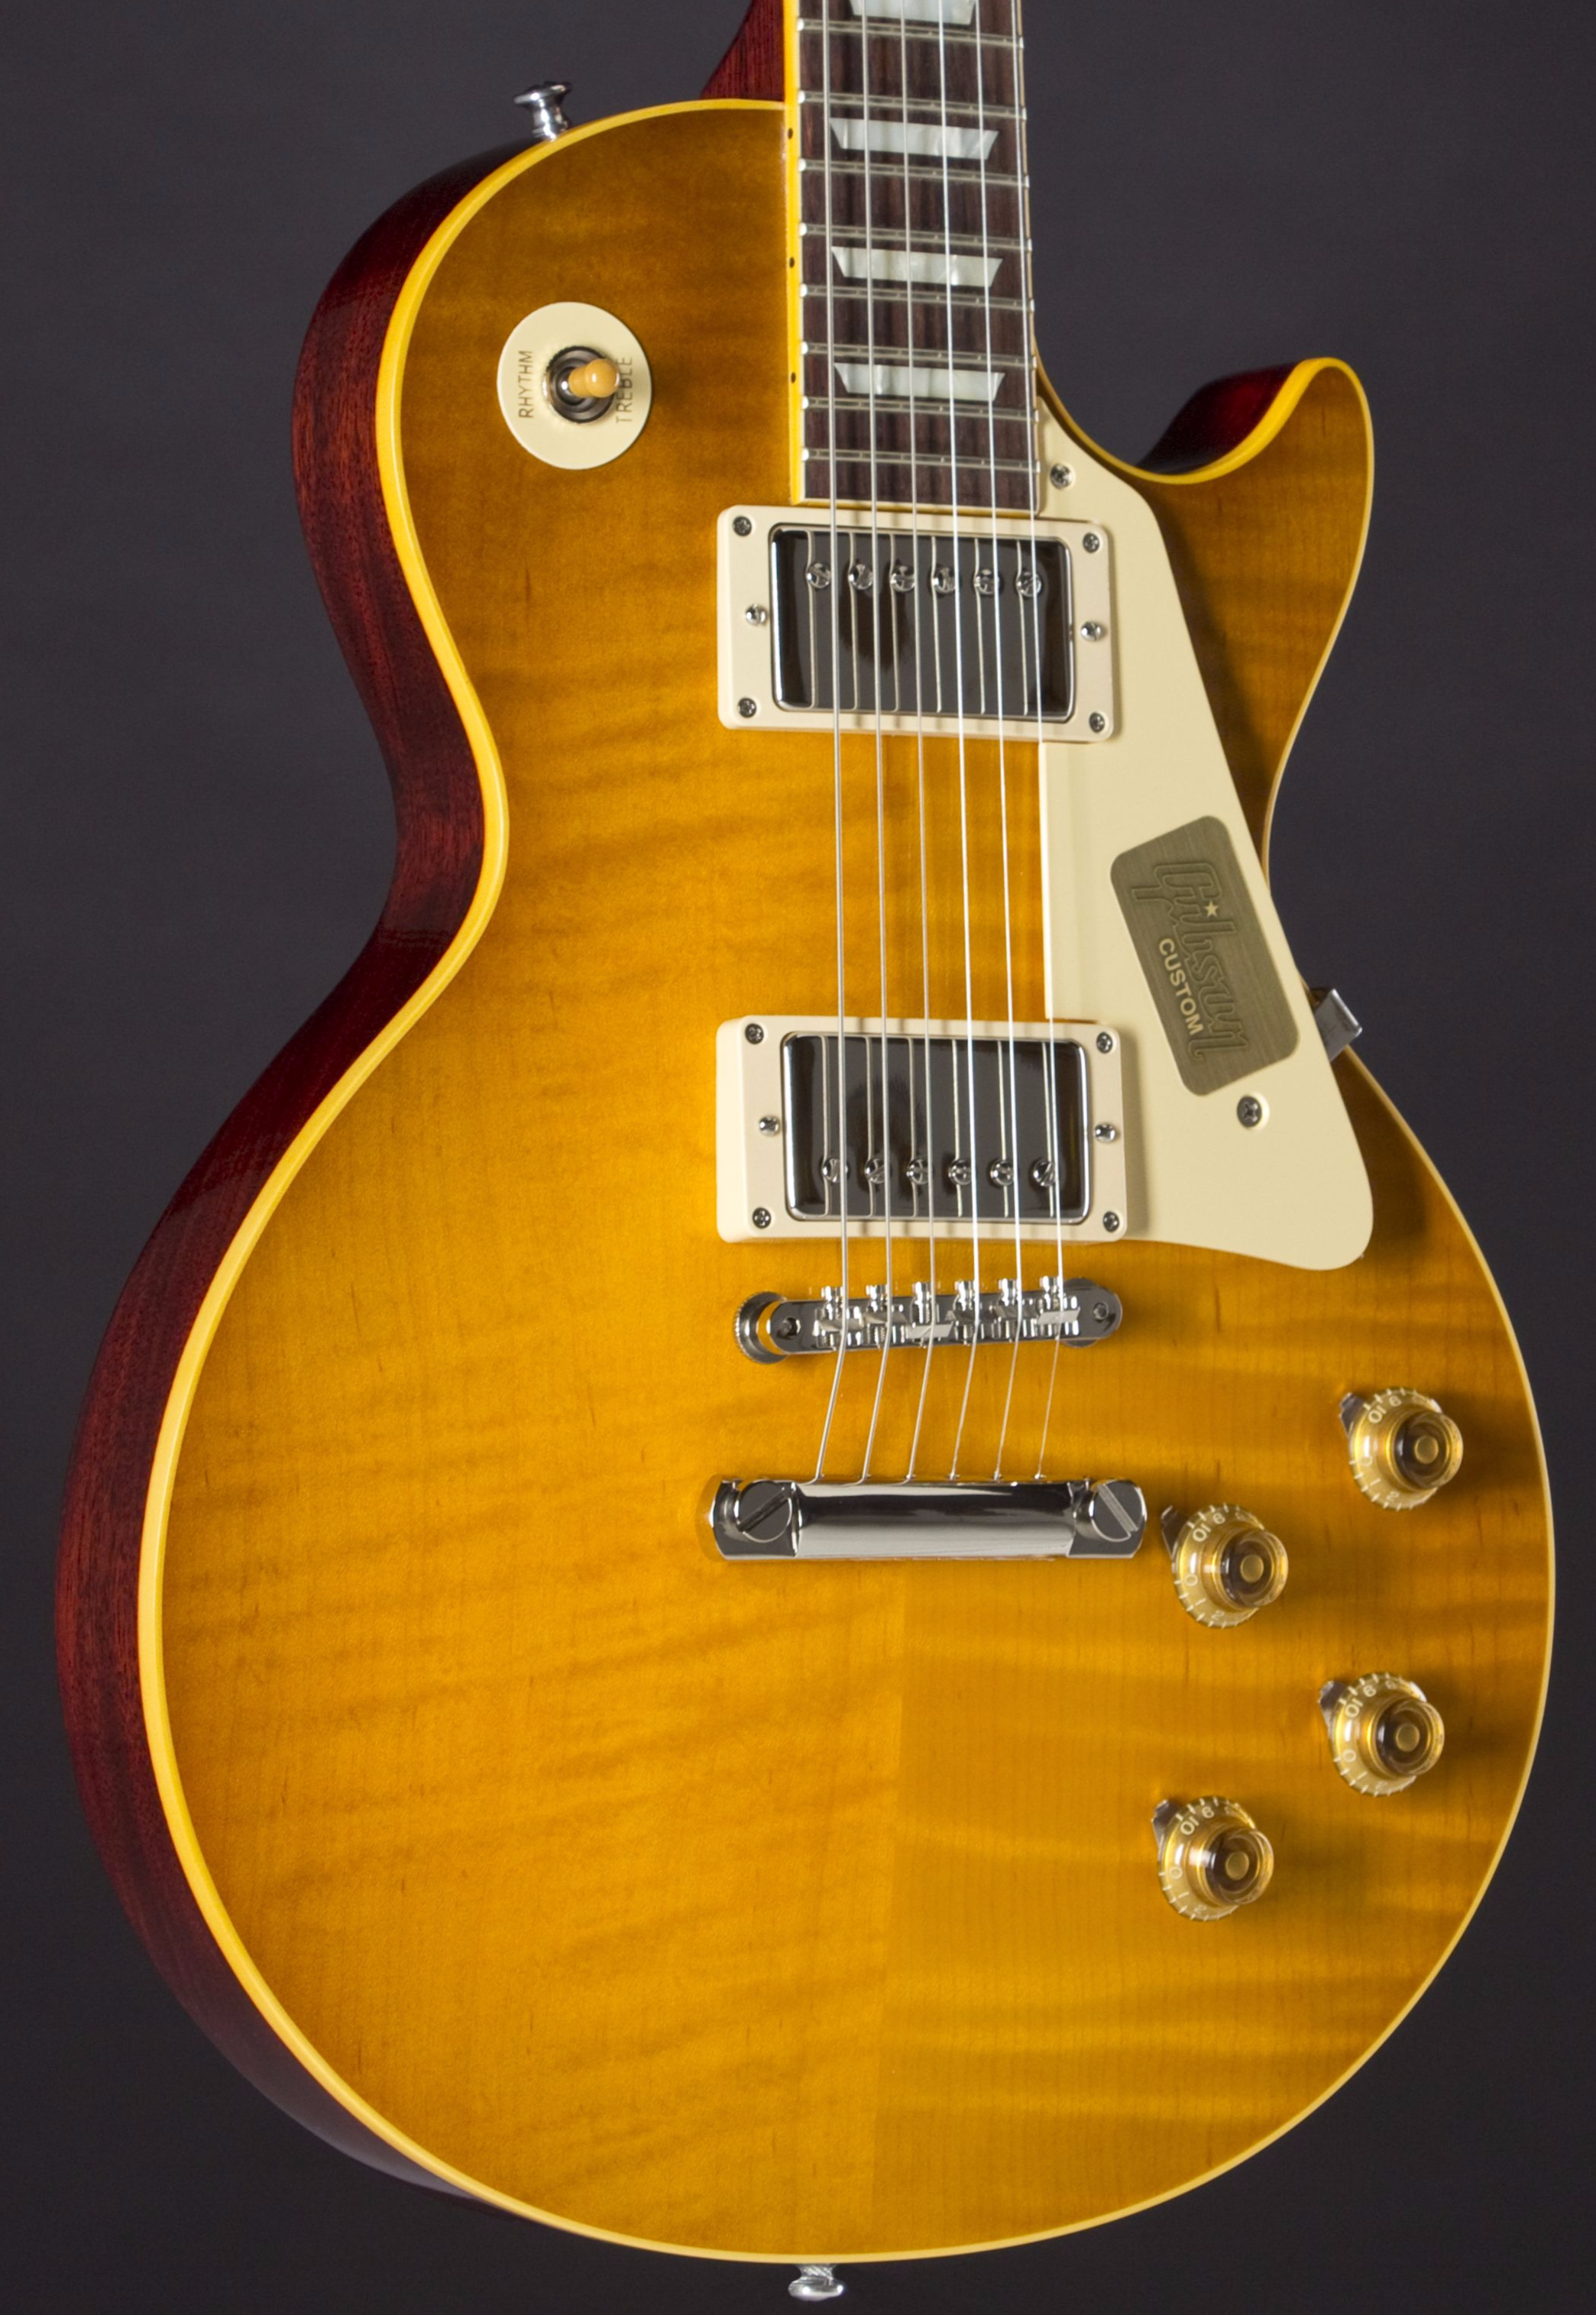 GIBSON Ace Frehley 1959 Les Paul Standard #AF088 Body Detail